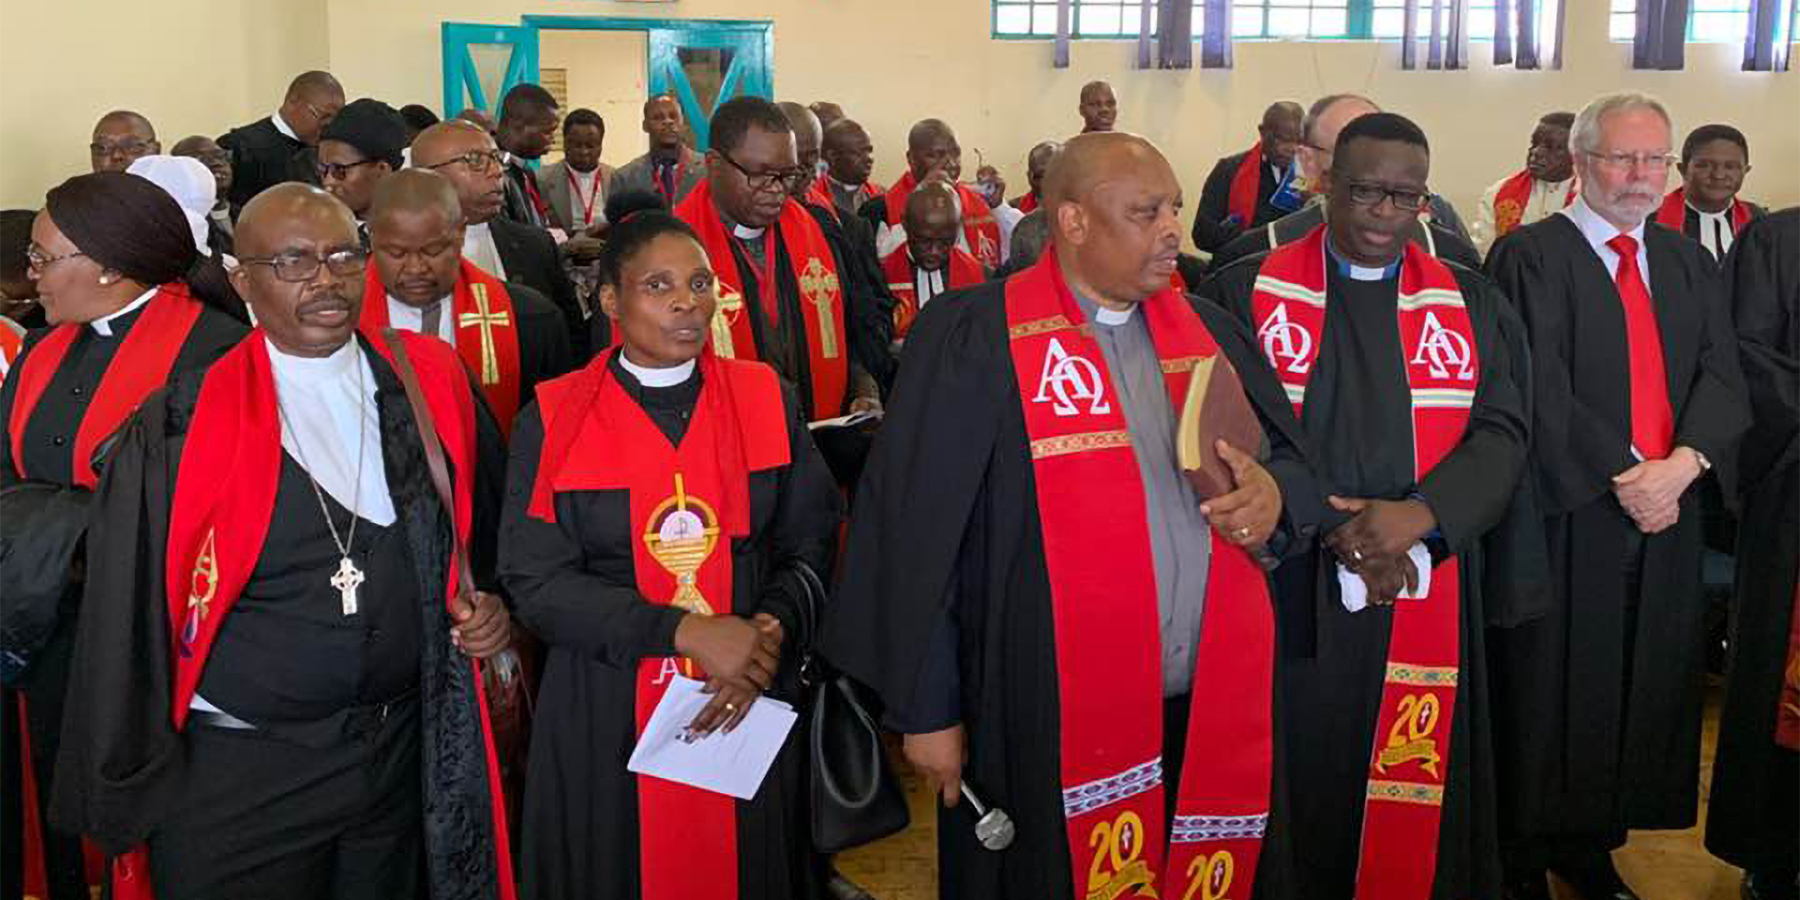 South African clergy gather for worship during the recent twenty-year celebration. Photo by Cindy Kohlmann